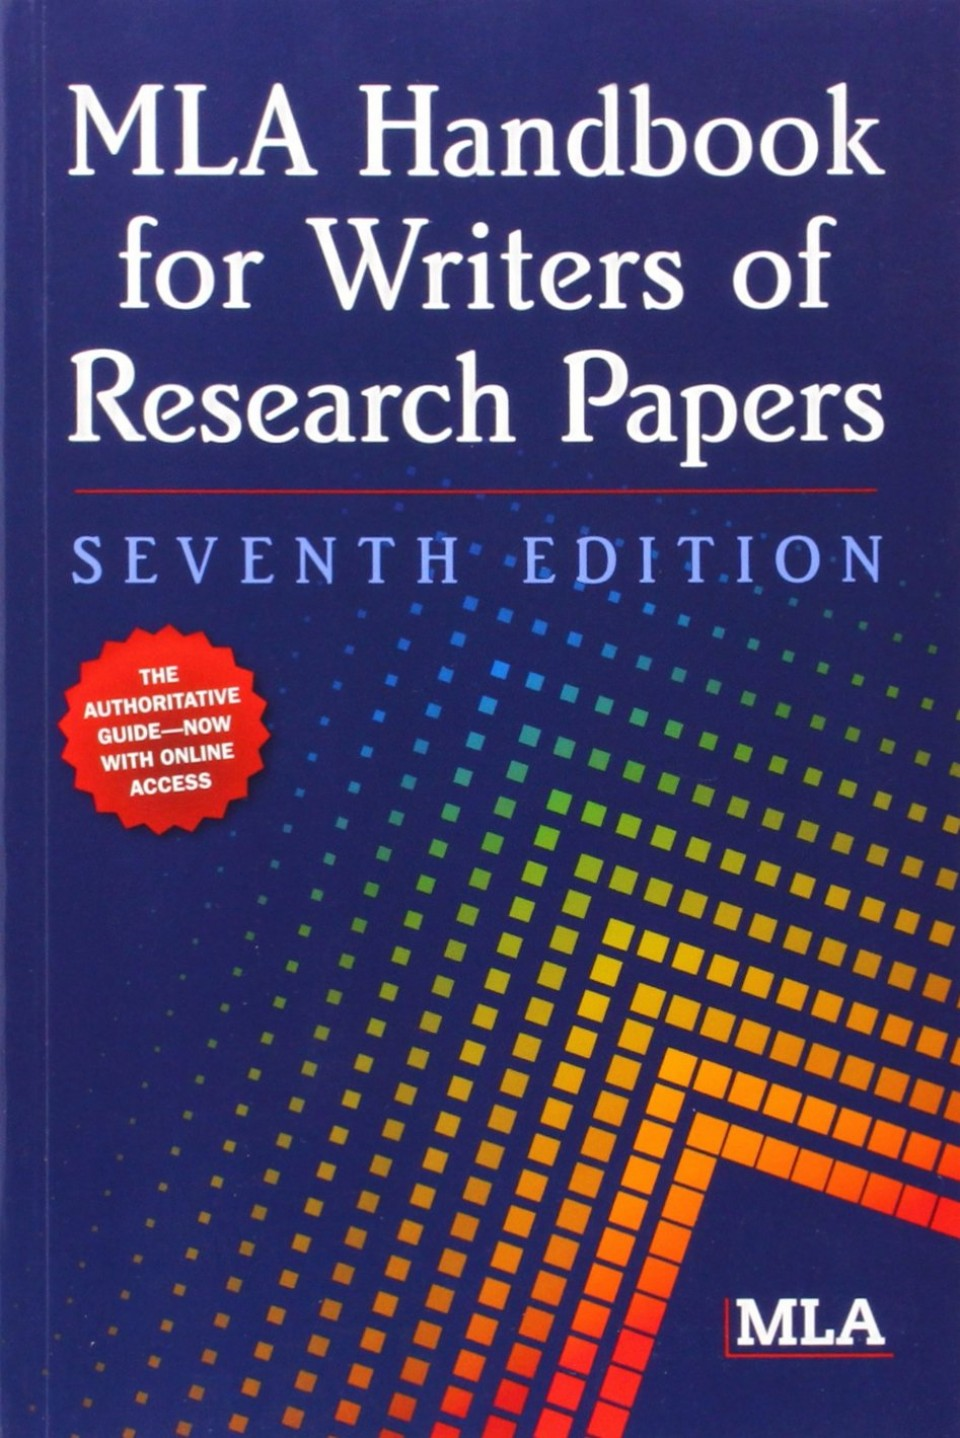 003 Mla Handbook For Writing Researchs Pdf 71lknvqs6gl Beautiful Research Papers Writers Of 5th Edition 7th Free Download 960